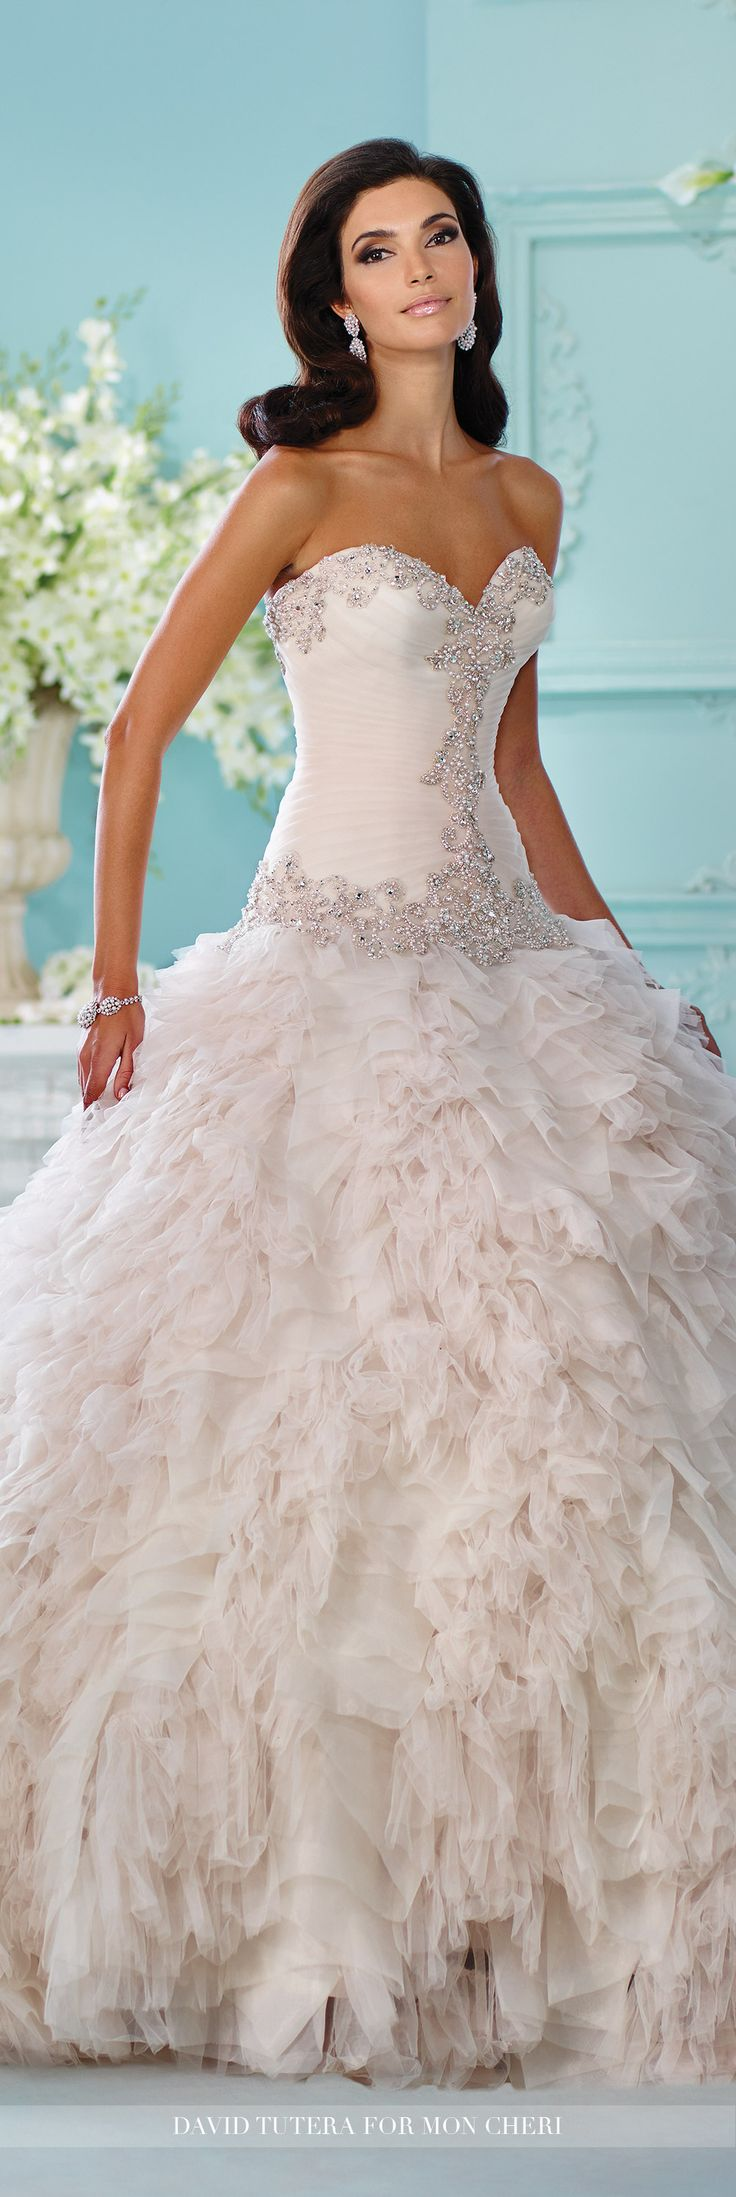 David Tutera for Mon Cheri Fall 2016 Collection - Style No. 216260 Meena - strapless tulle and organza ruffled skirt wedding dress